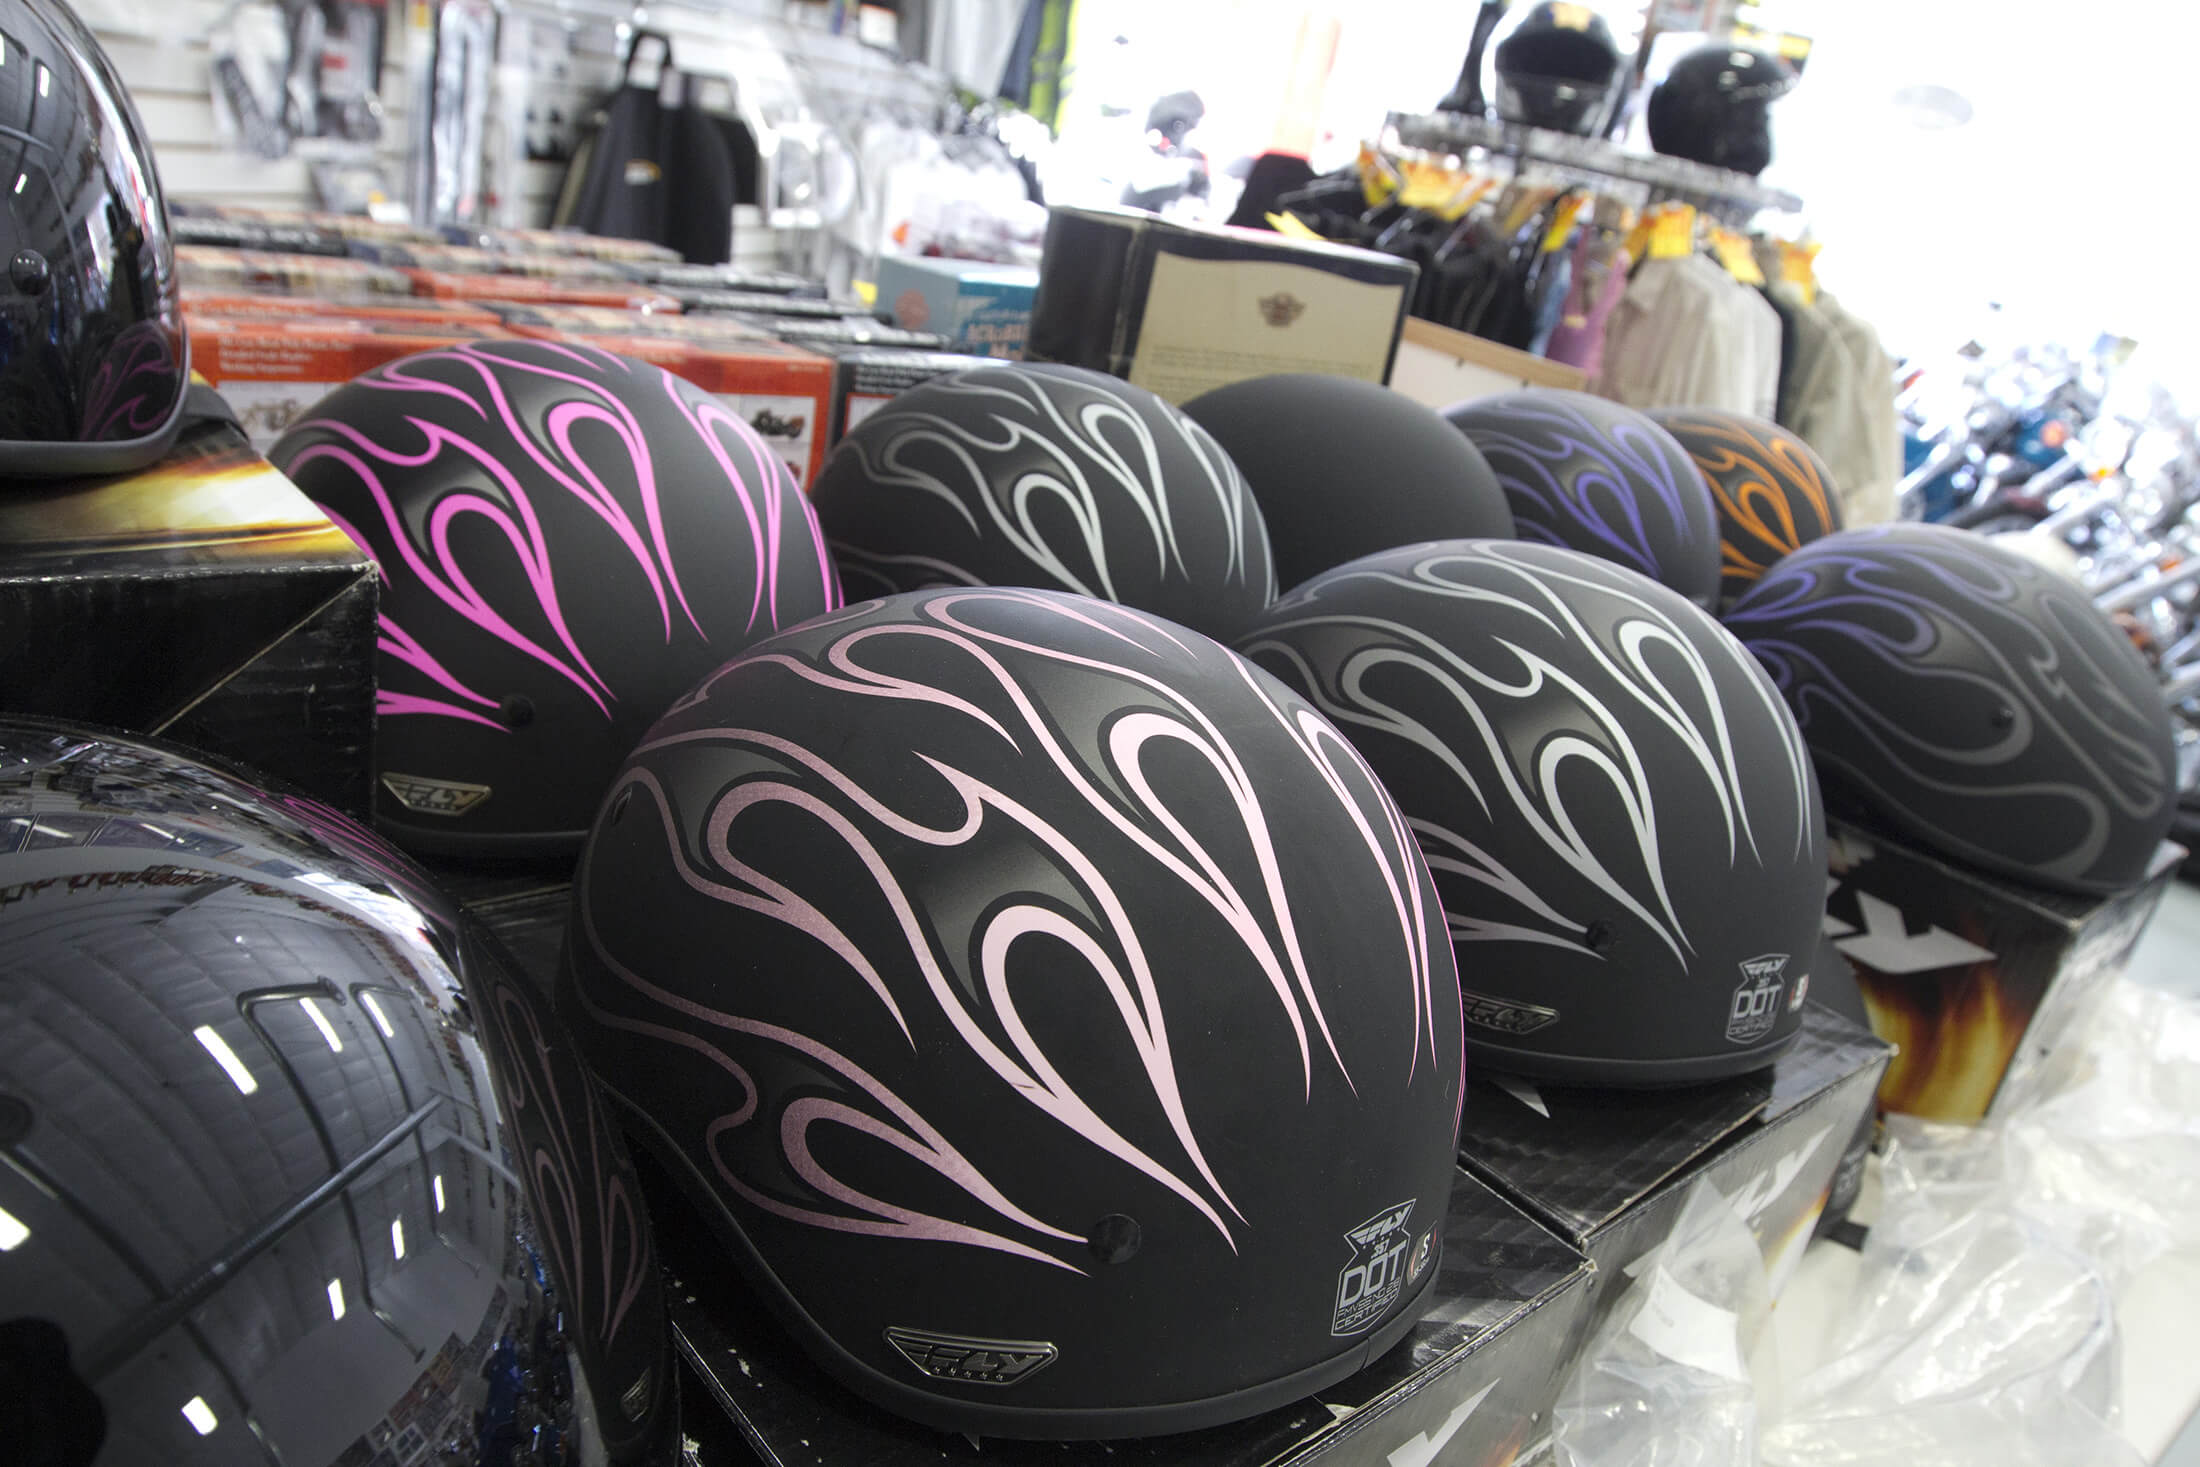 Motorcycle helmets in the shop